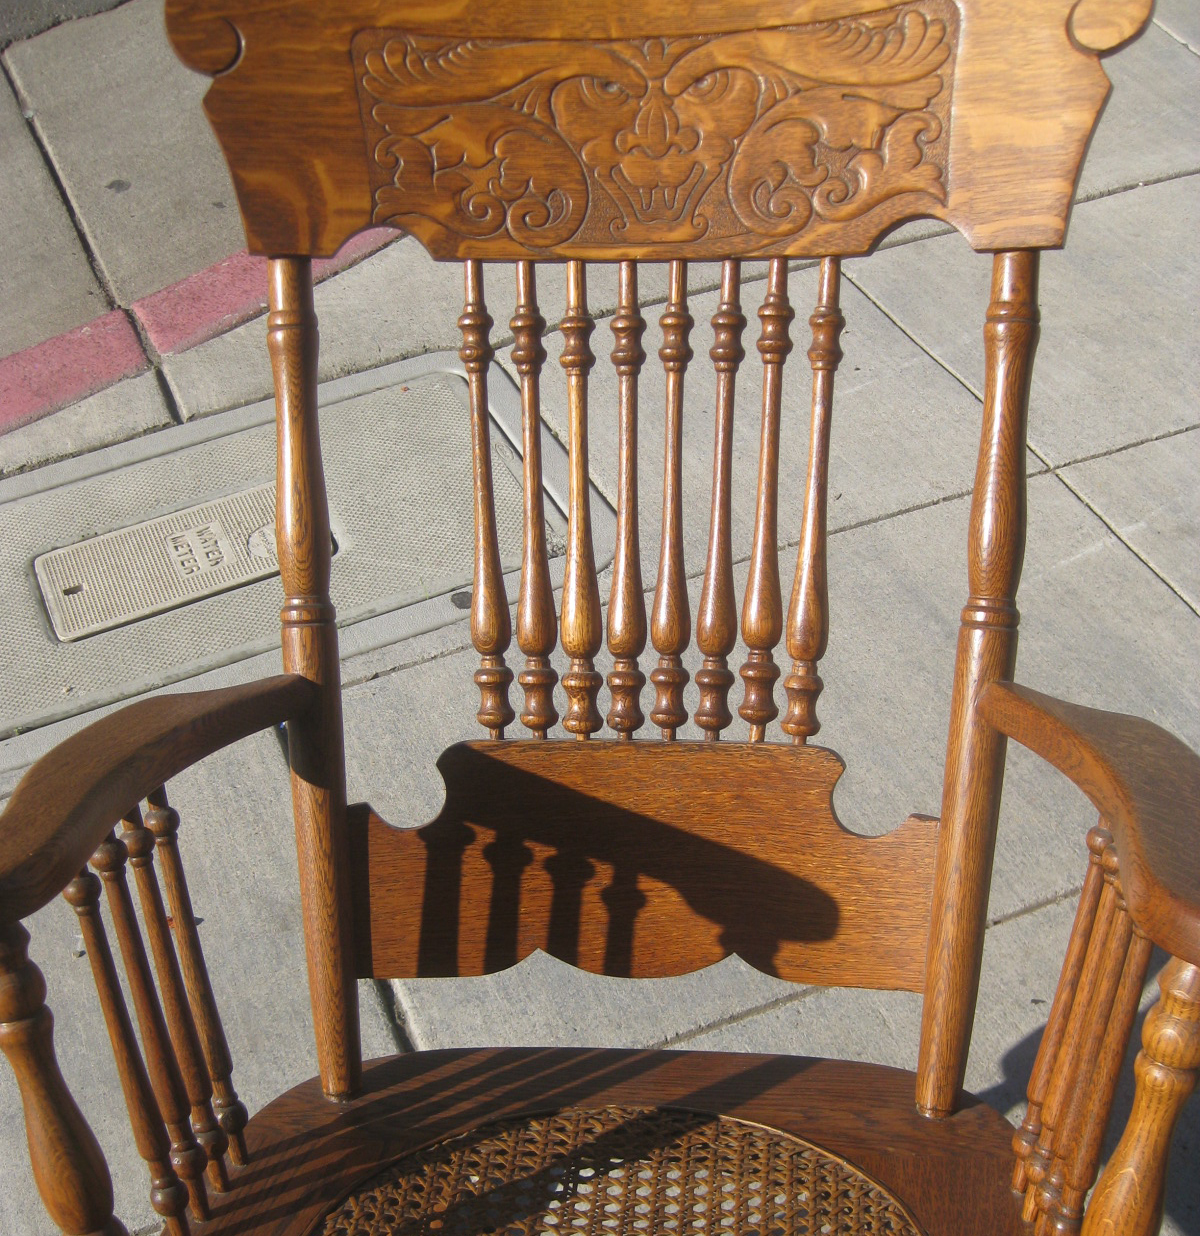 Antique Rocking Chair Uhuru Furniture And Collectibles Sold Antique Rocking